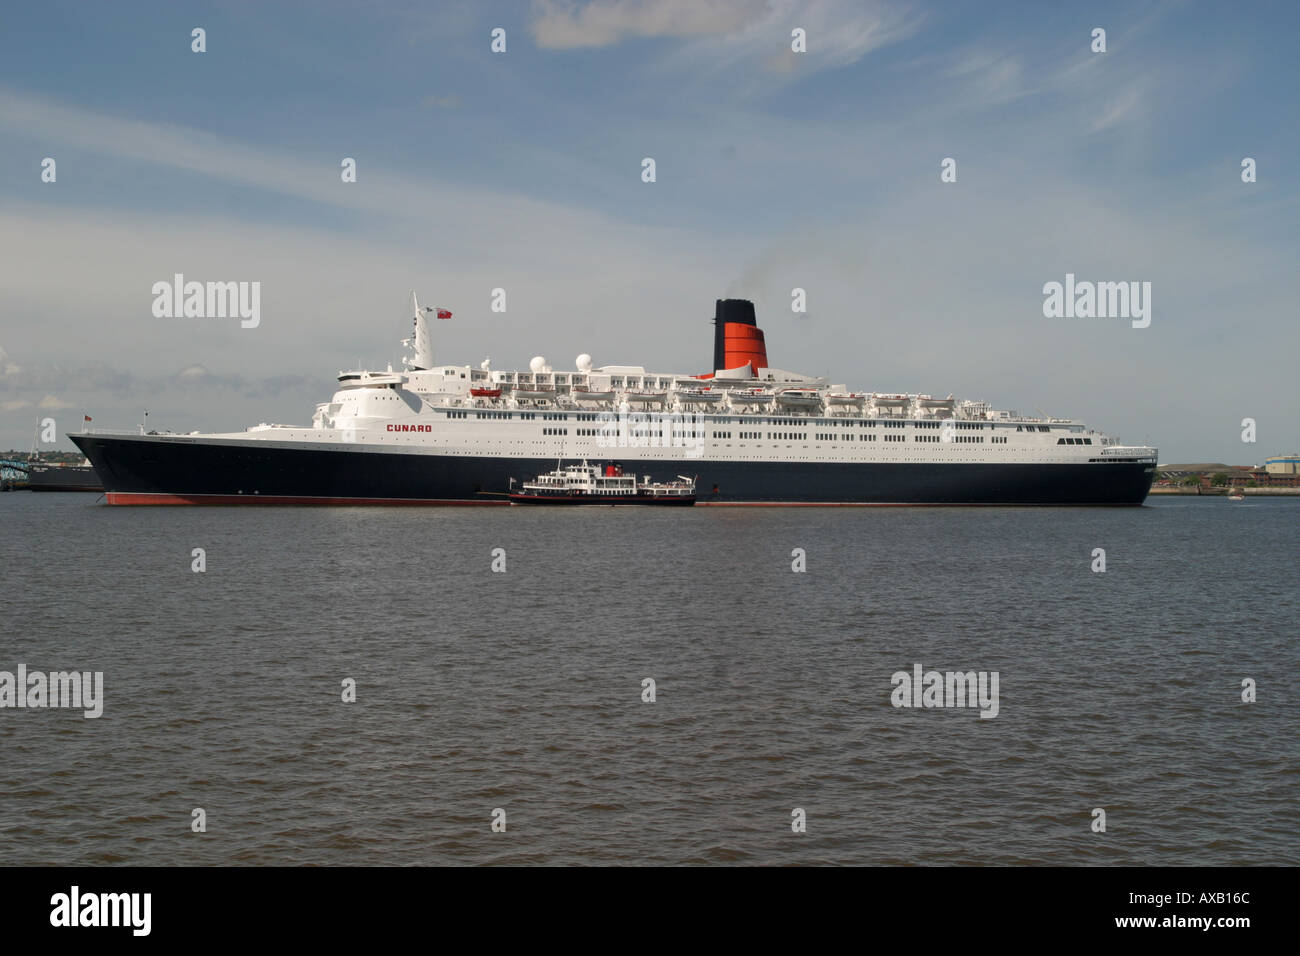 The QE2 anchored in the River Mersey - Stock Image